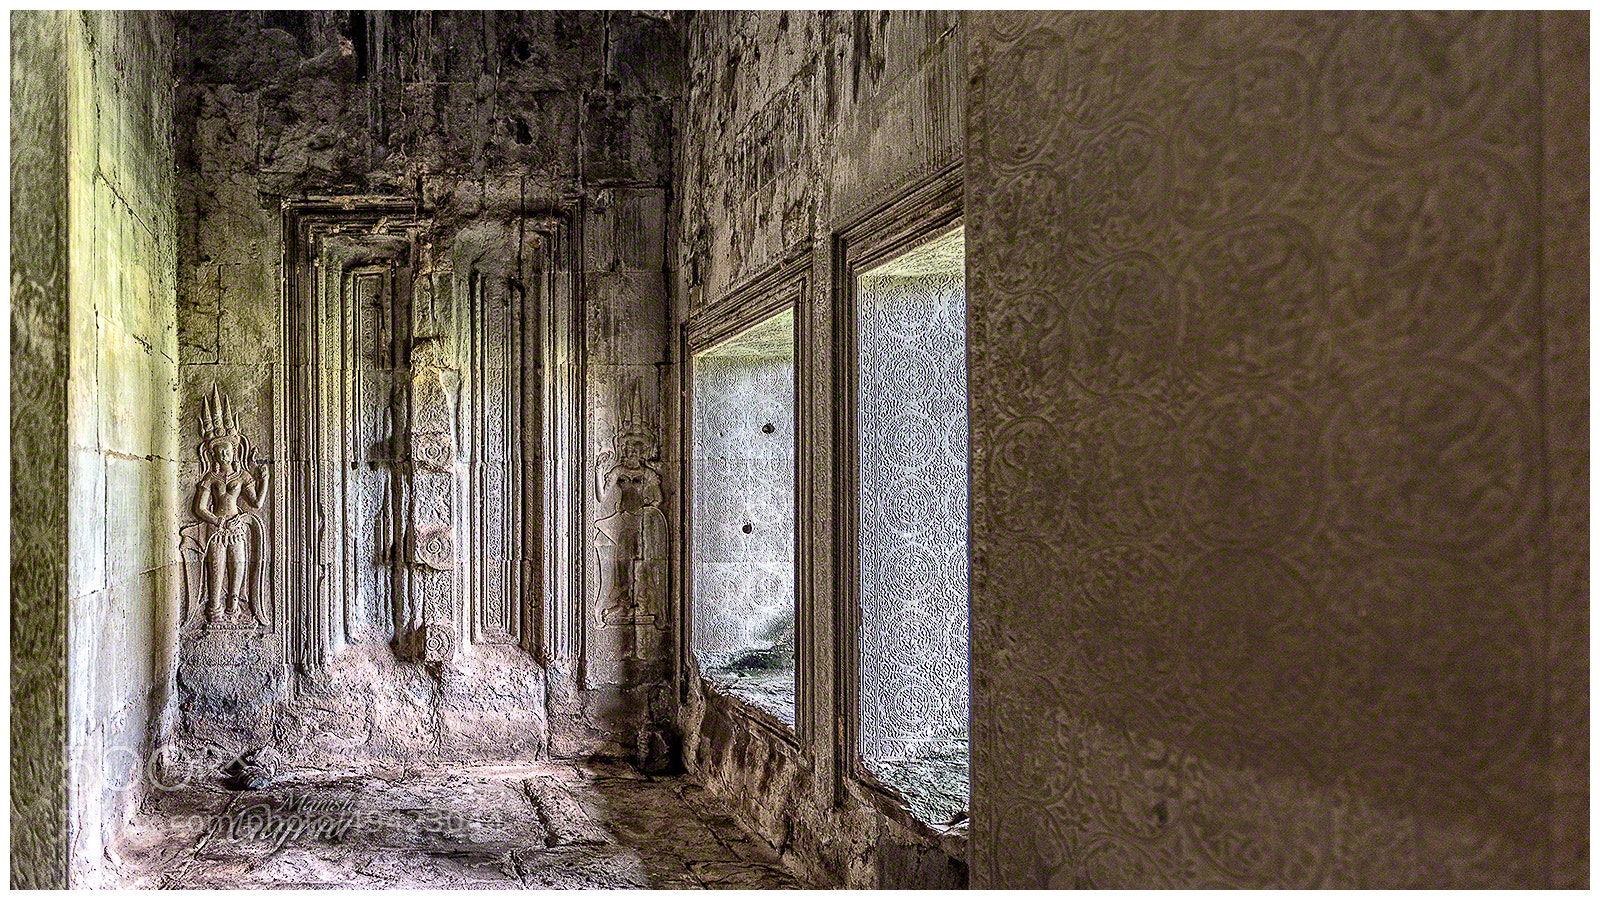 Photograph Remains of an Era by Manish Gajria on 500px